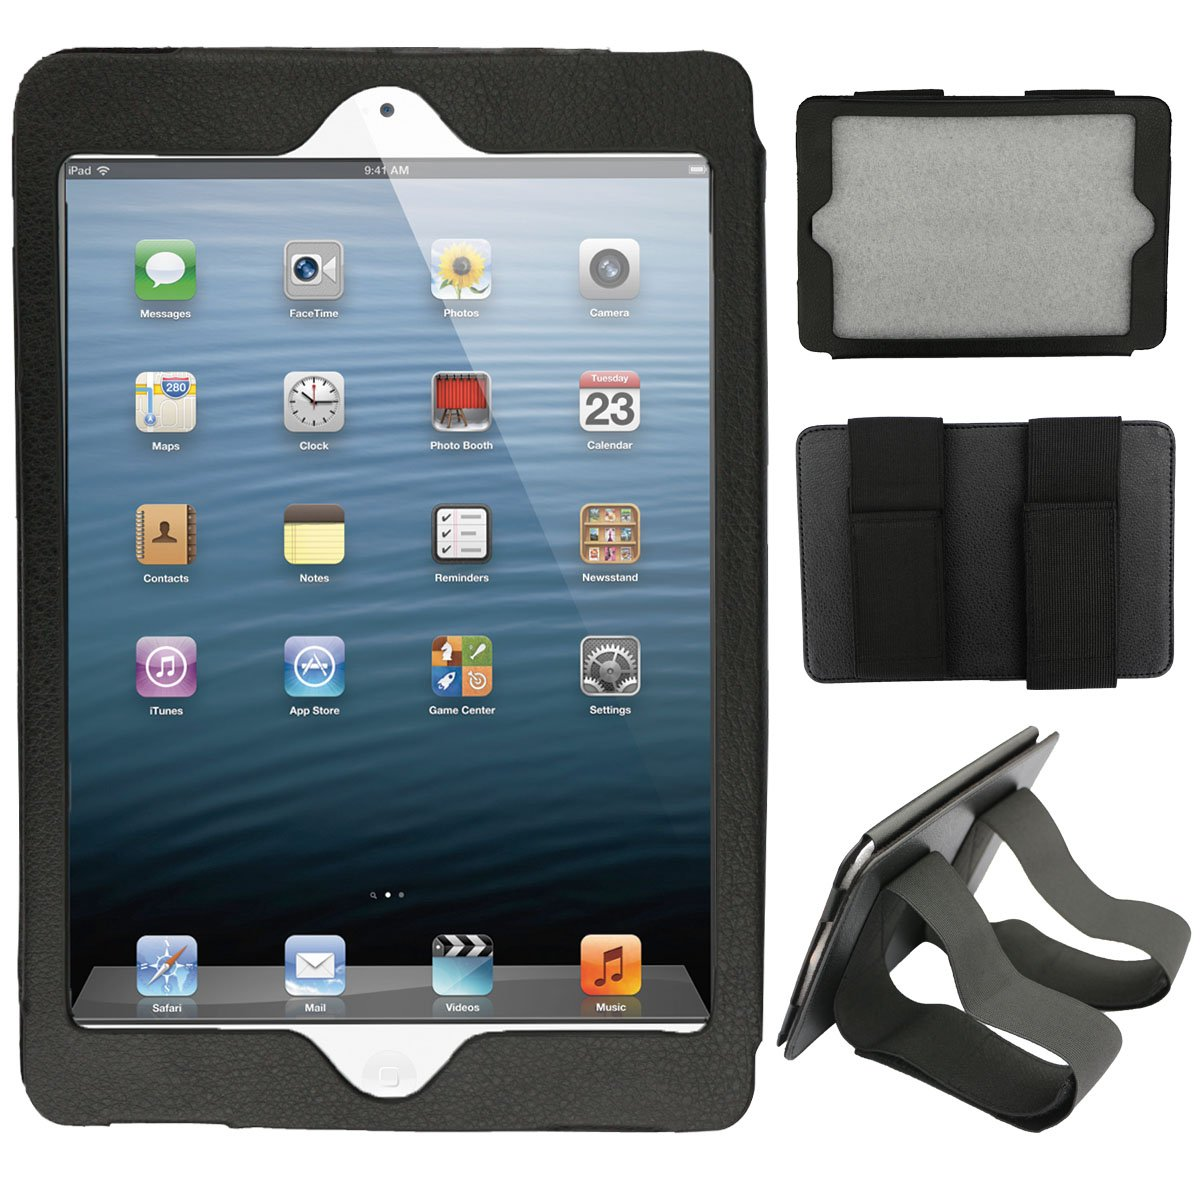 Car Headrest Mount Mounting Holder for iPad Mini 1 2 3 Protect Case 7.9 Inch B/&K Company